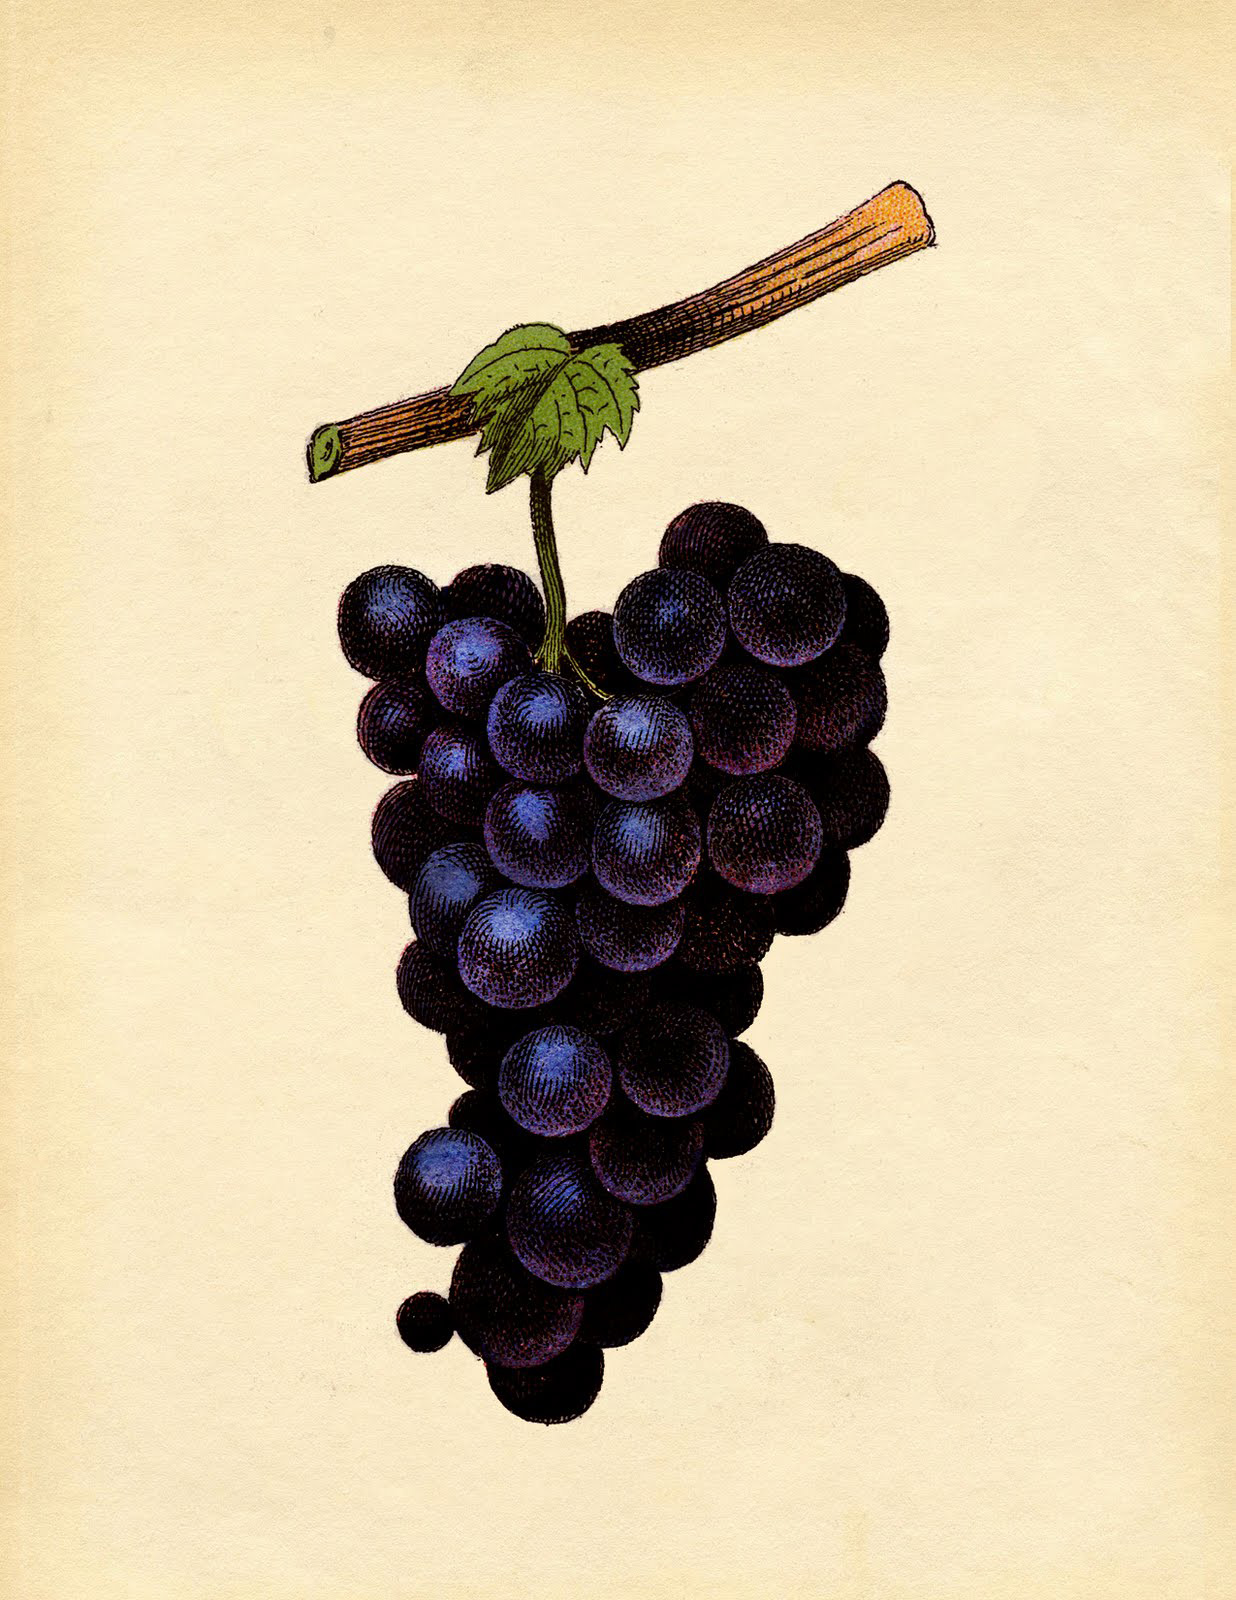 grapes-purple-graphicsfairysm